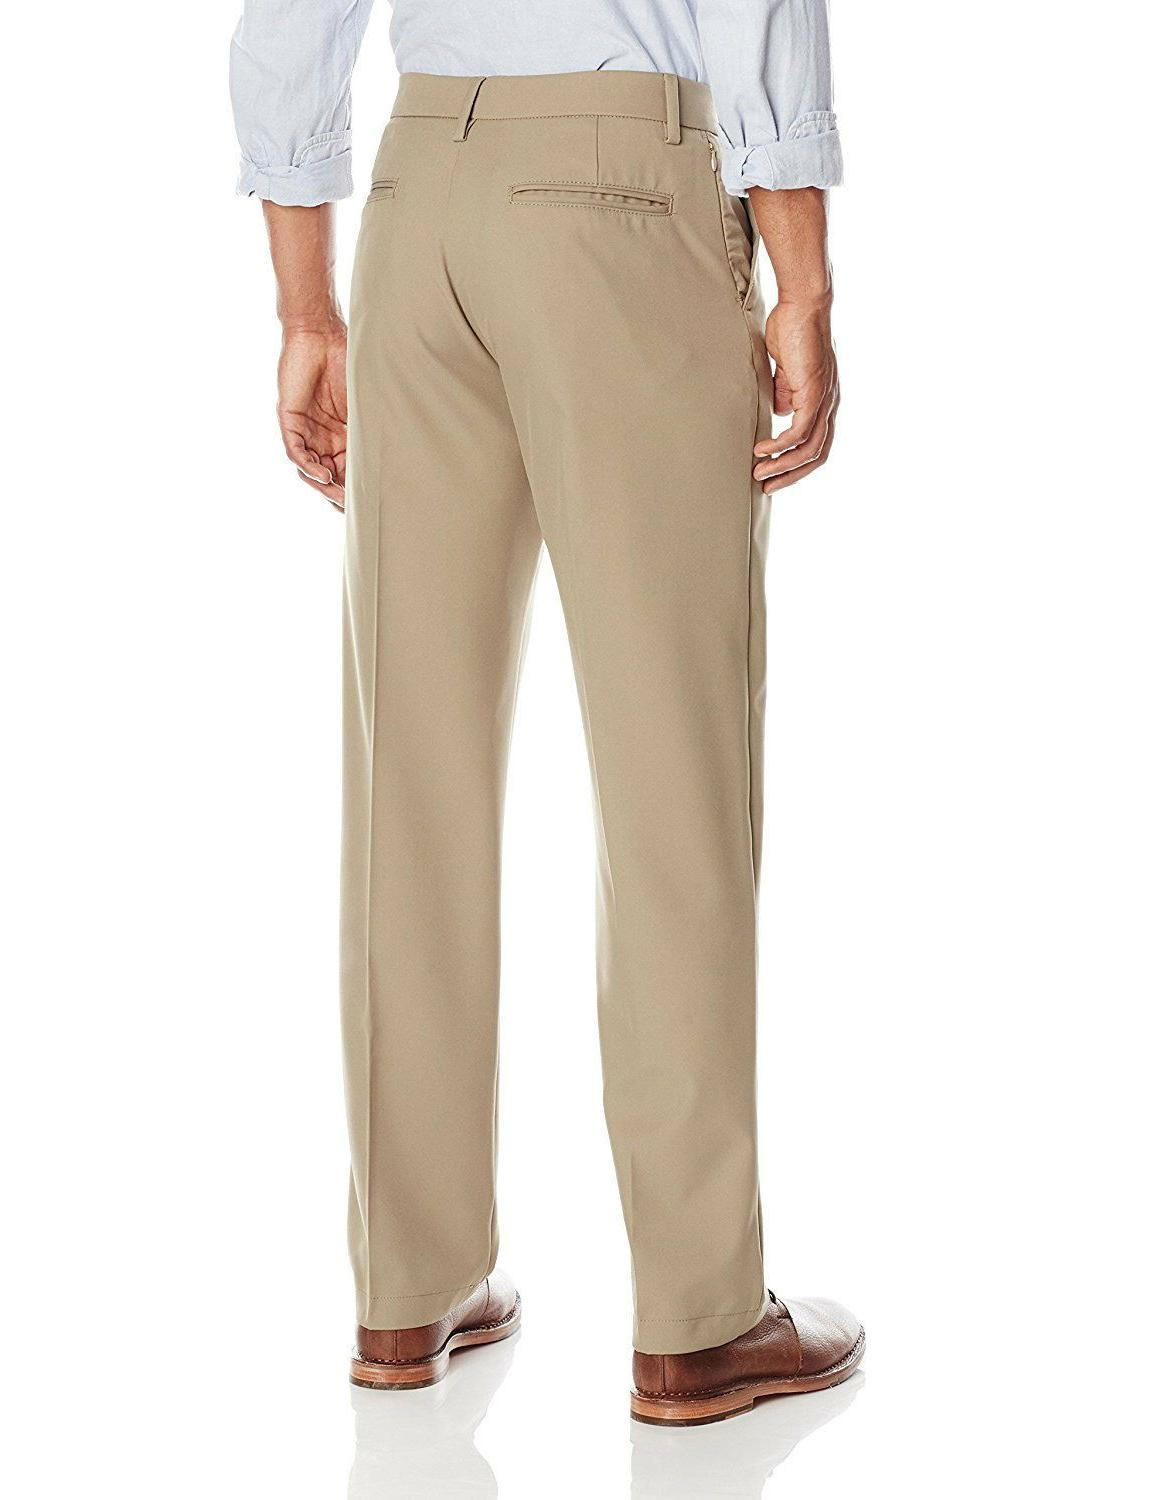 Lee Performance Traveler Chino New Without